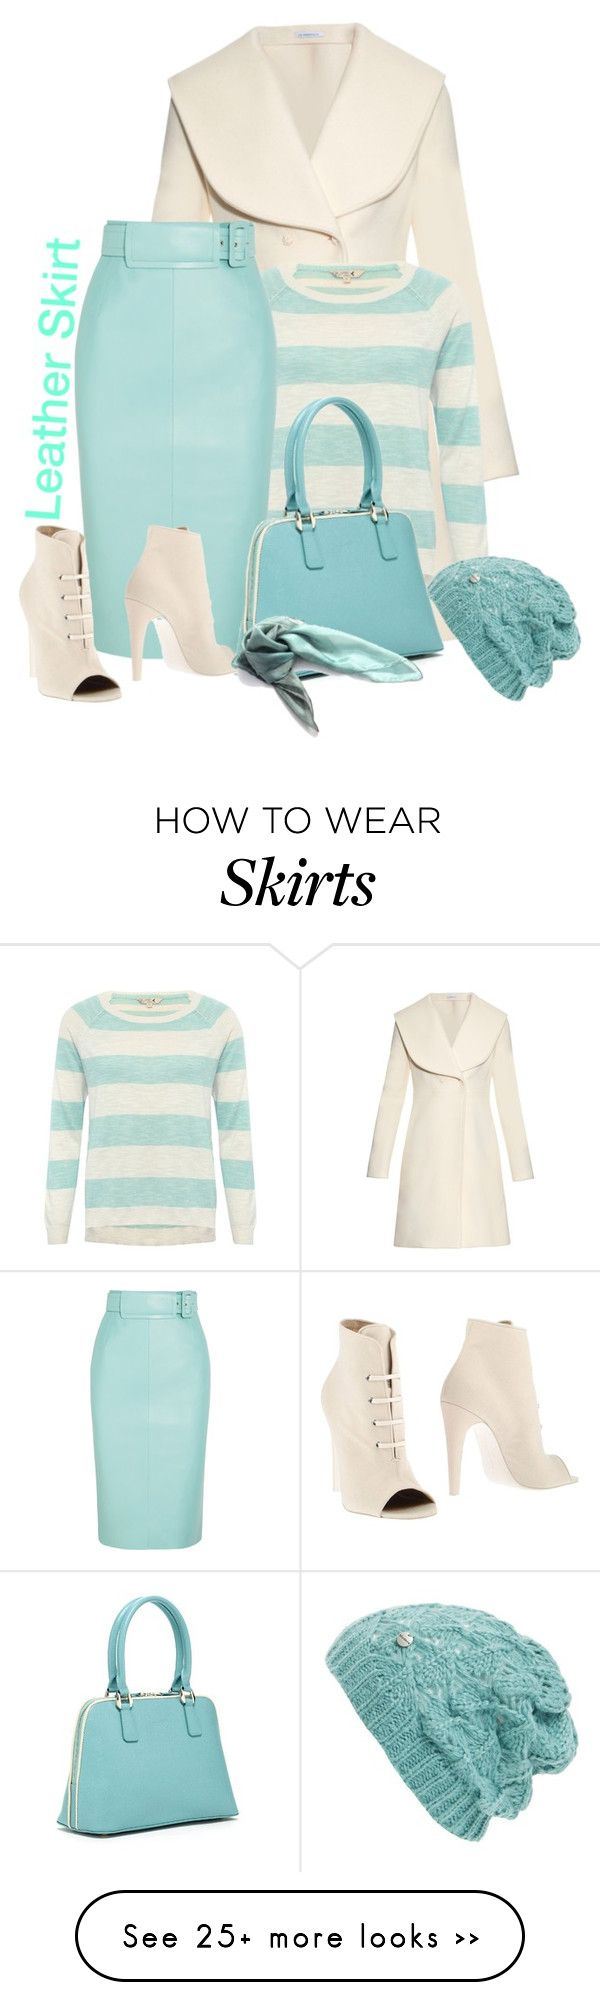 """Leather Skirt"" by lorrainekeenan on Polyvore featuring мода, J.W. Anderson, M&Co, Balenciaga, Off-White, SUSU и Modena"